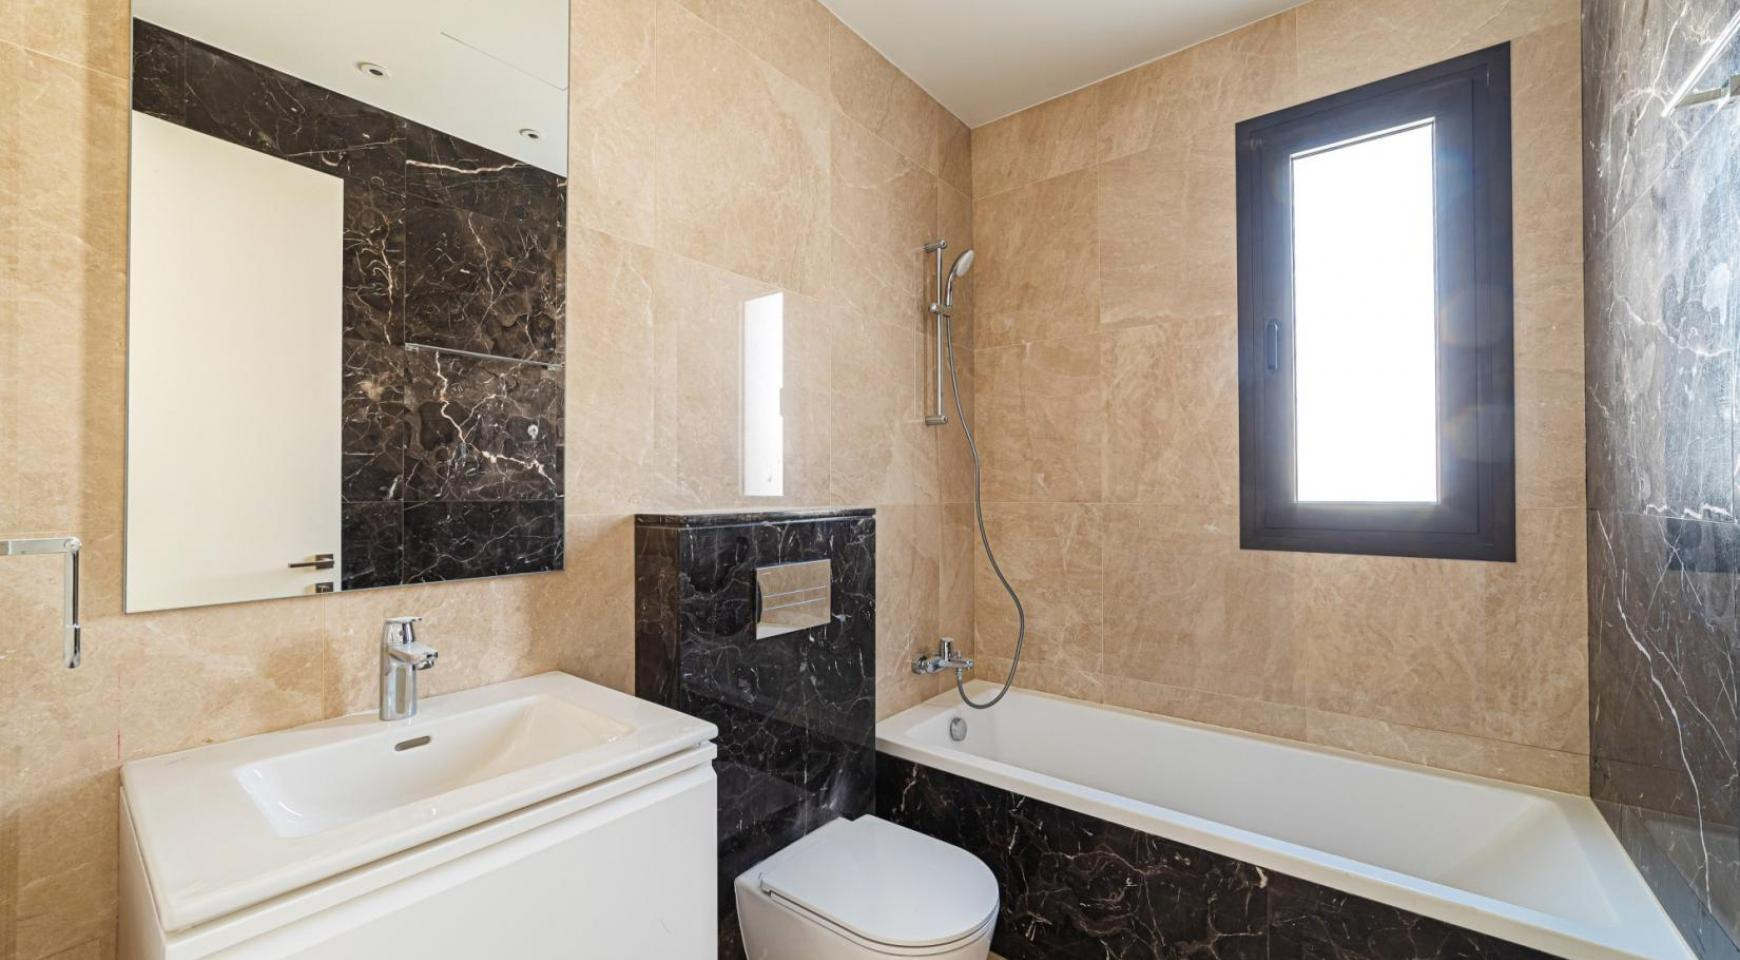 Hortensia Residence, Apt. 201. 2 Bedroom Apartment within a New Complex near the Sea  - 38